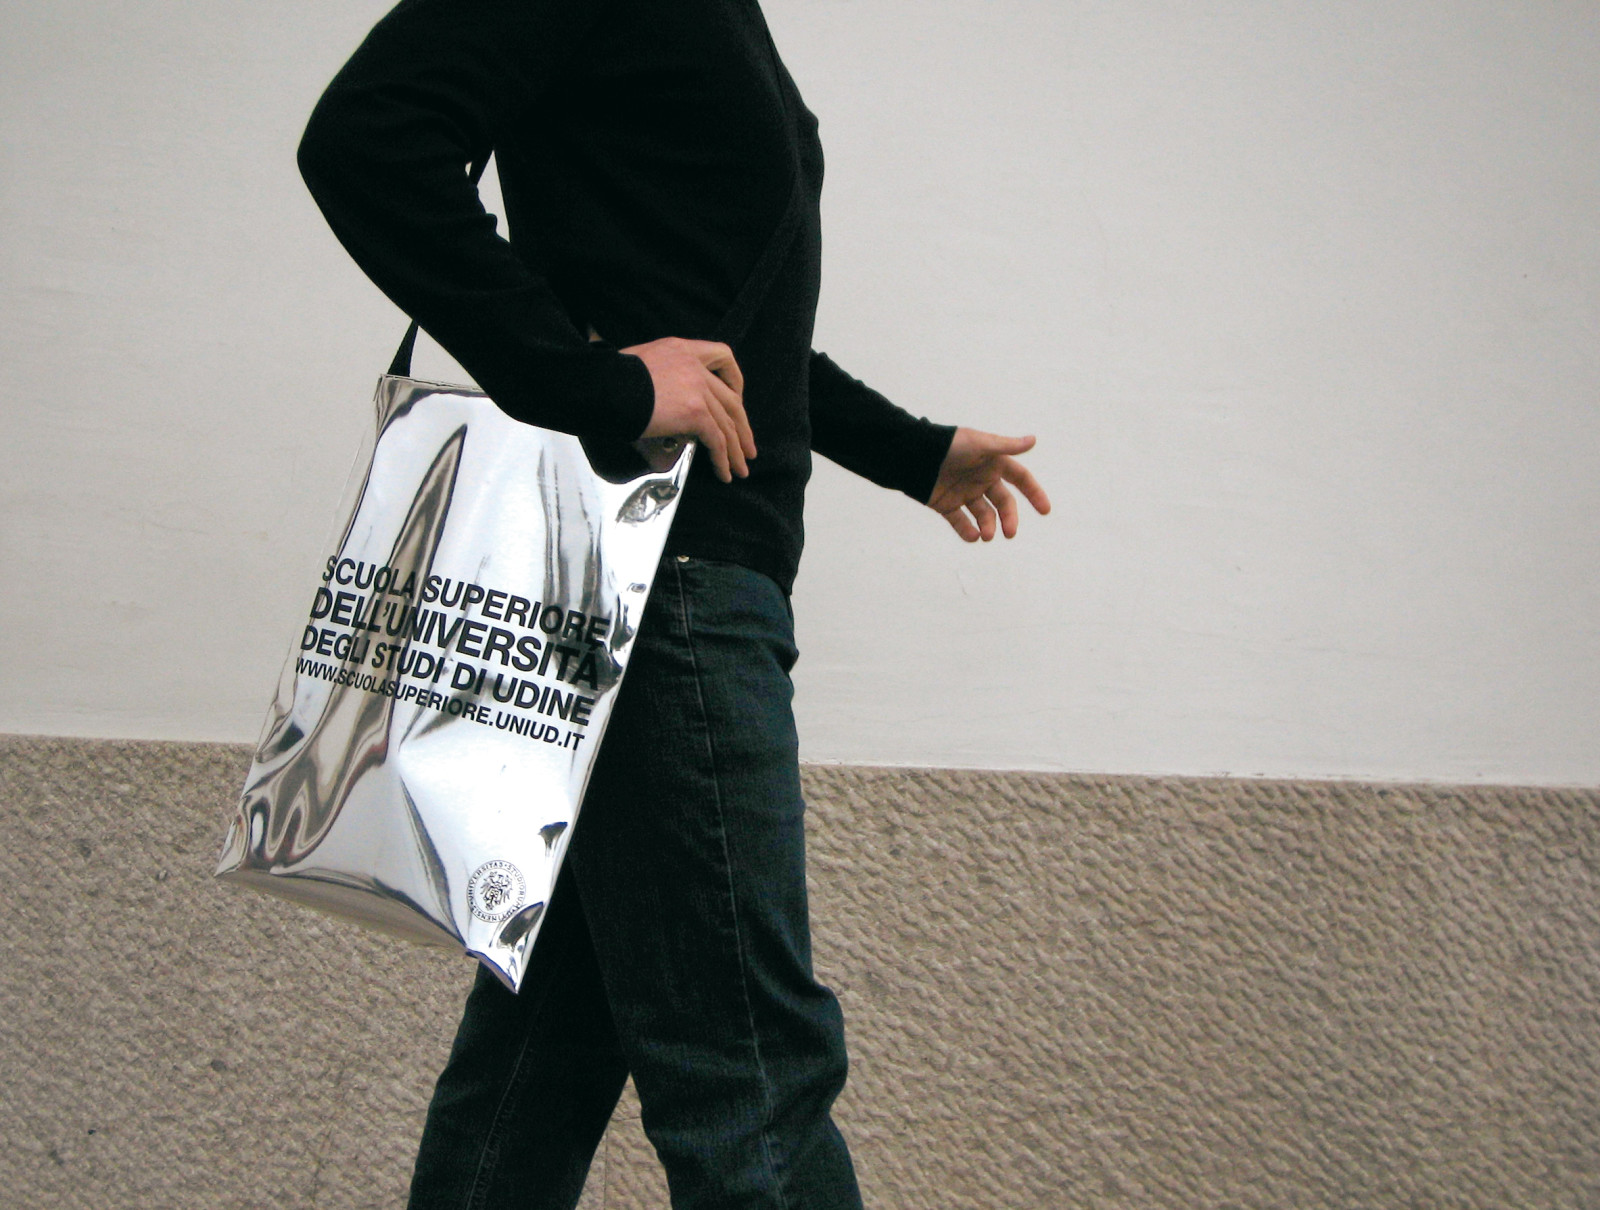 shopper superiore A